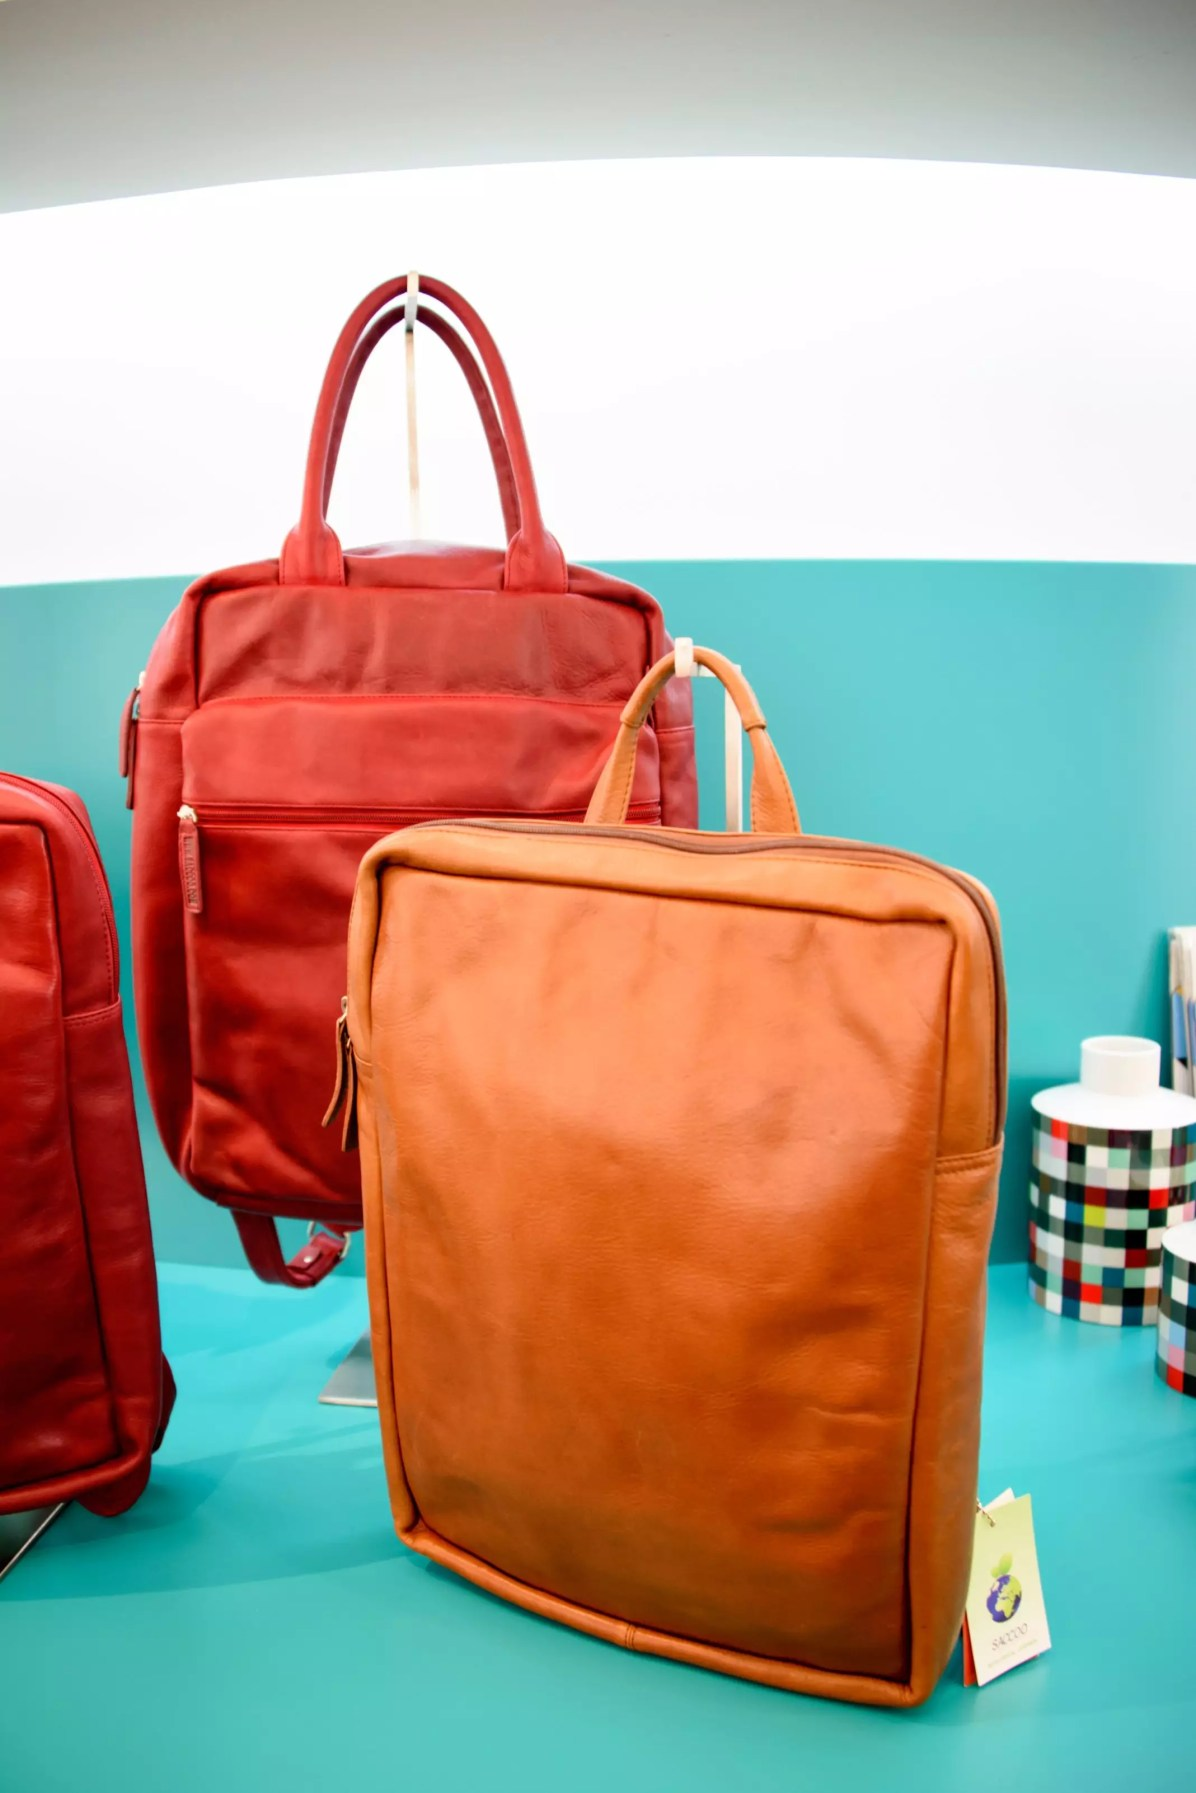 """Couple Travel: """"It's a beautiful bag, but... what about our budget?"""""""